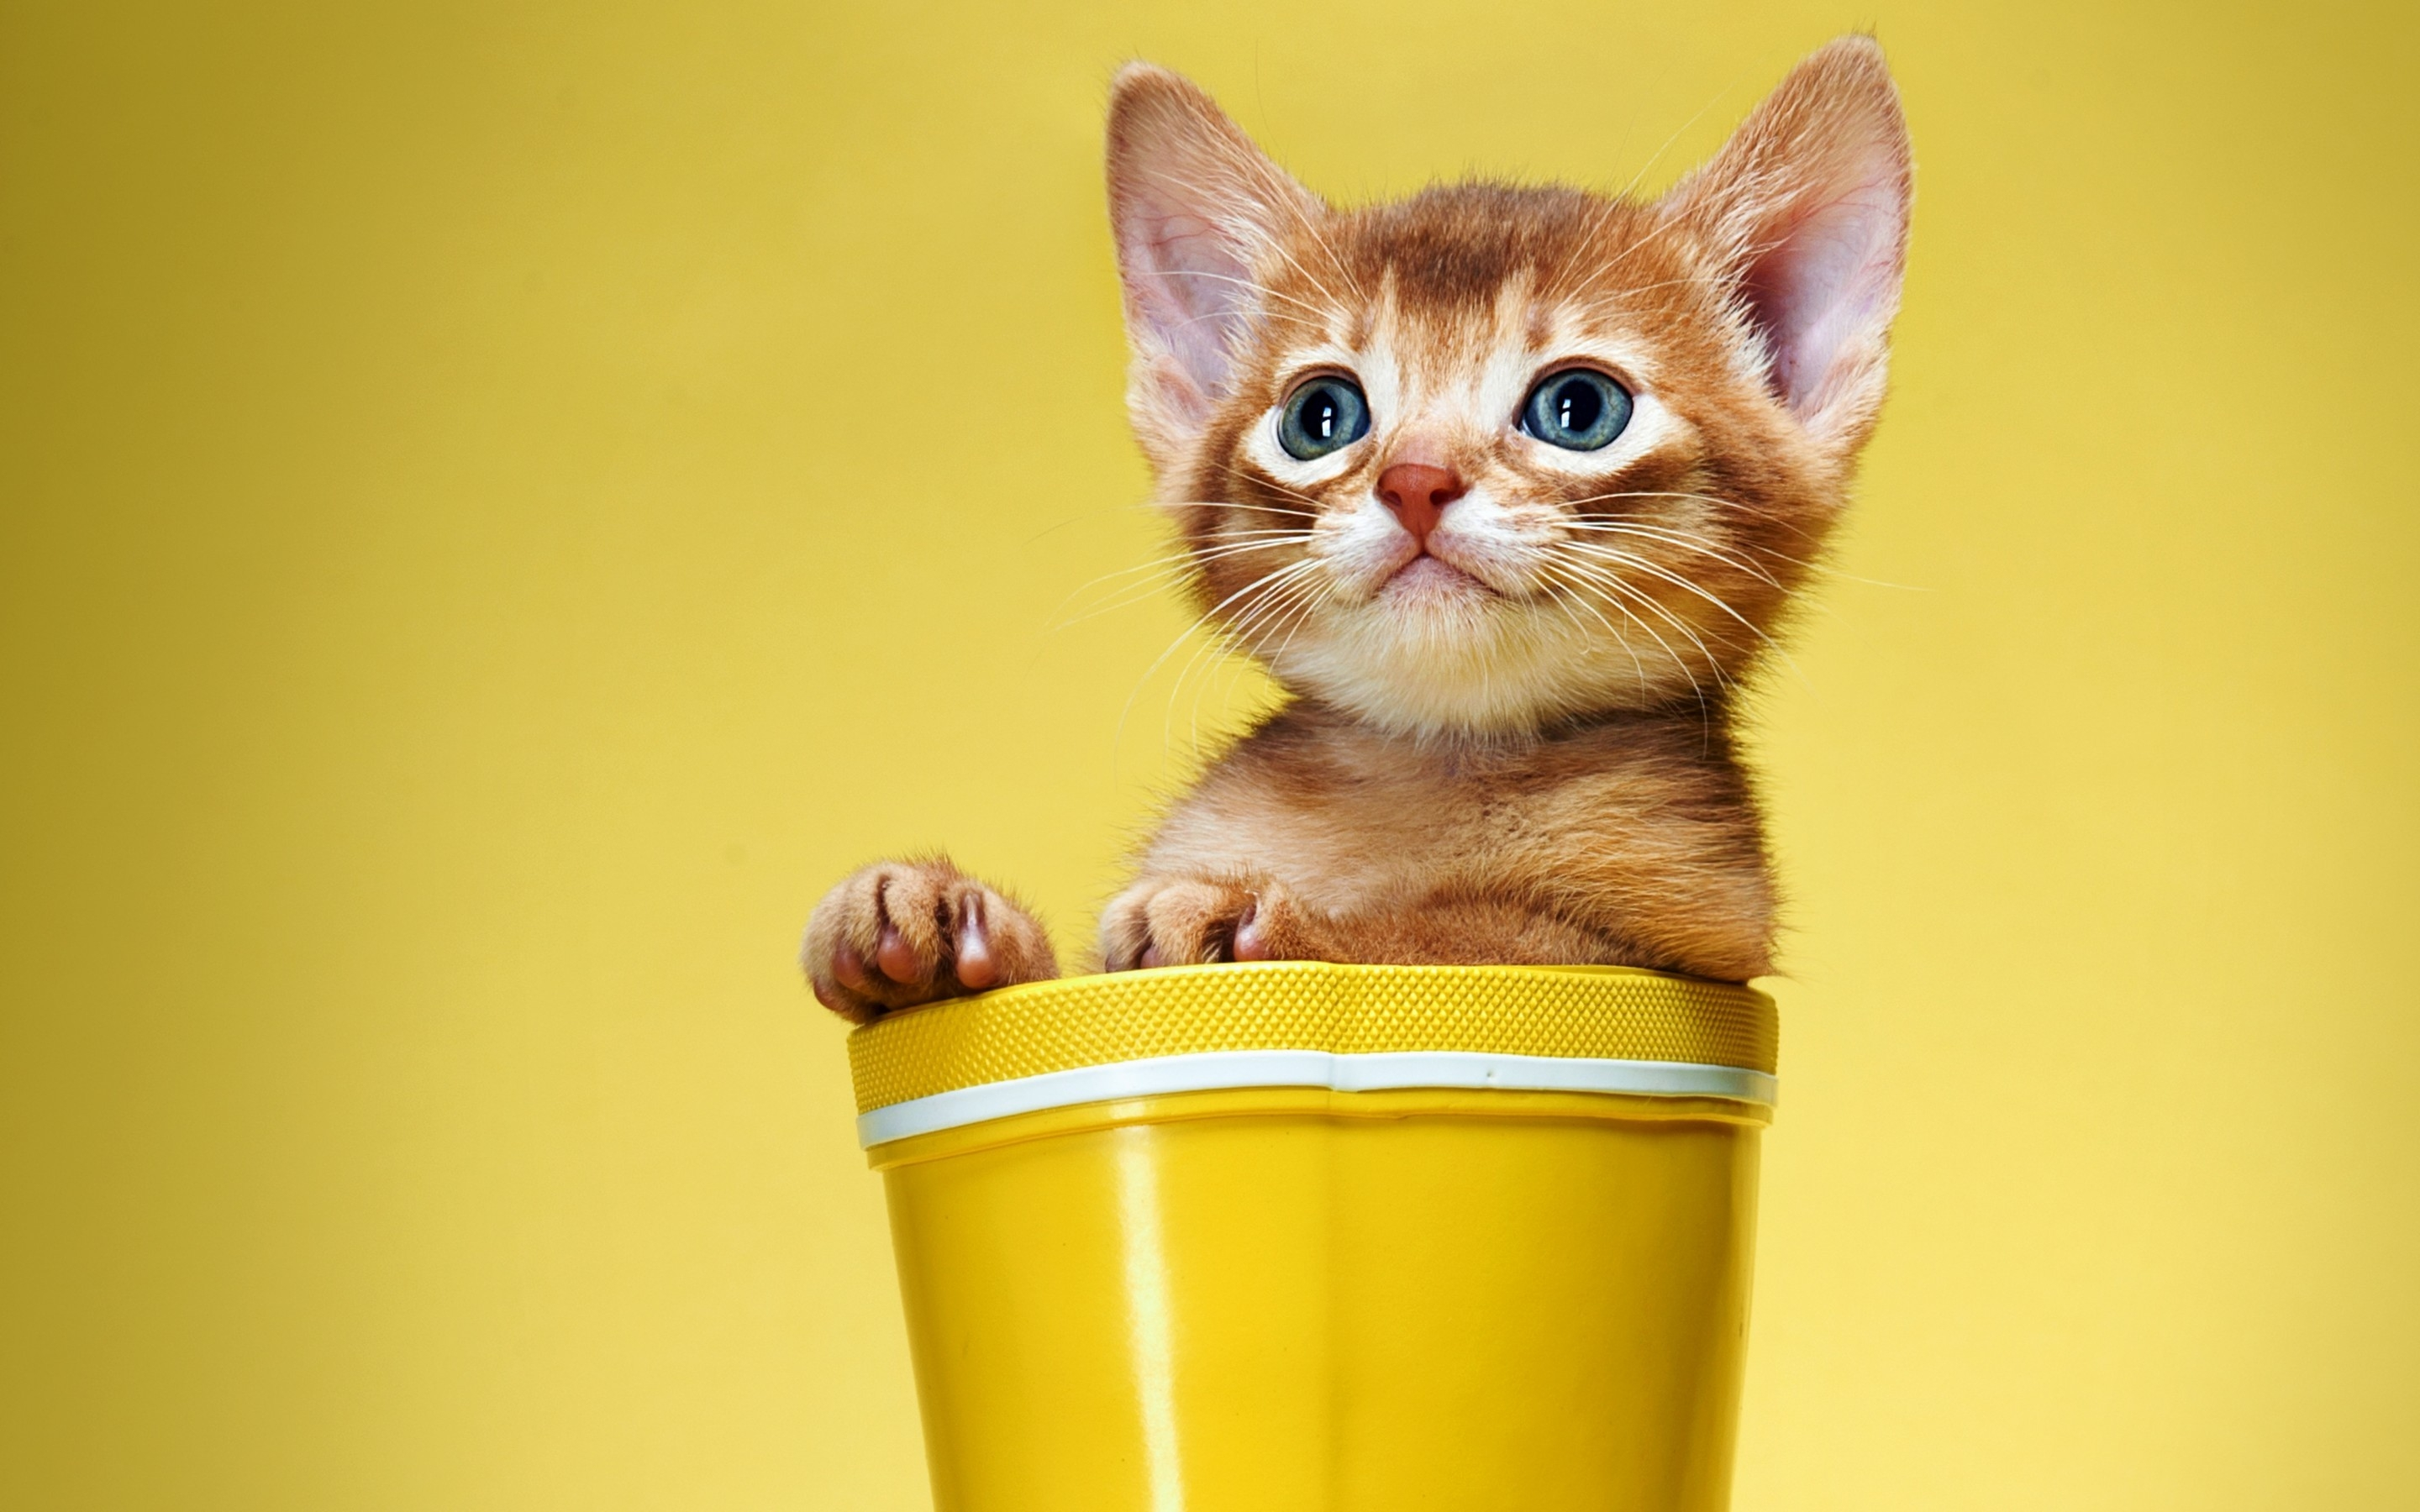 Cute And Sweet Kitty Hd Wallpaper Wallpaperfx